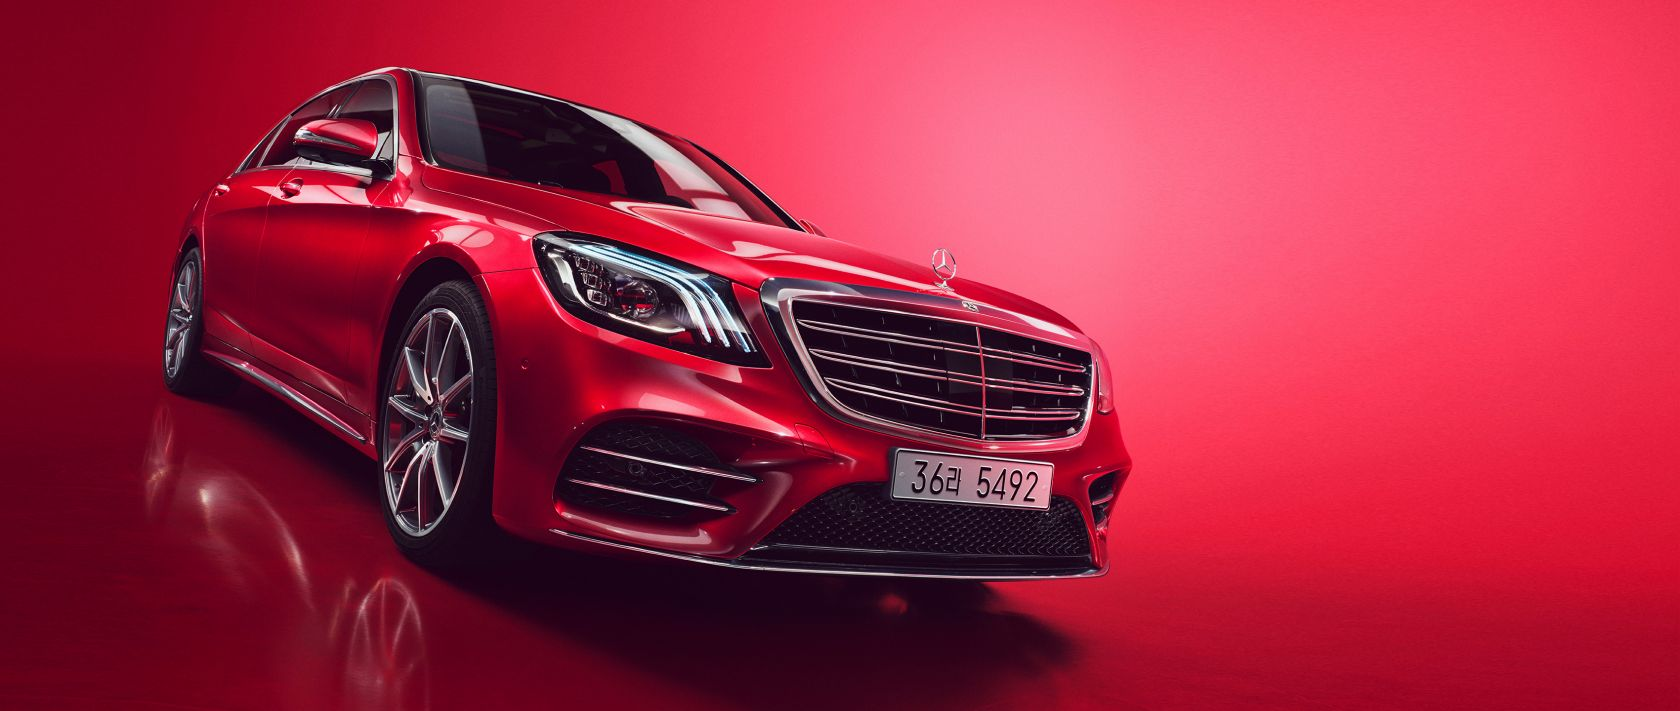 The Mercedes-Benz S 560 4MATIC in red with background.